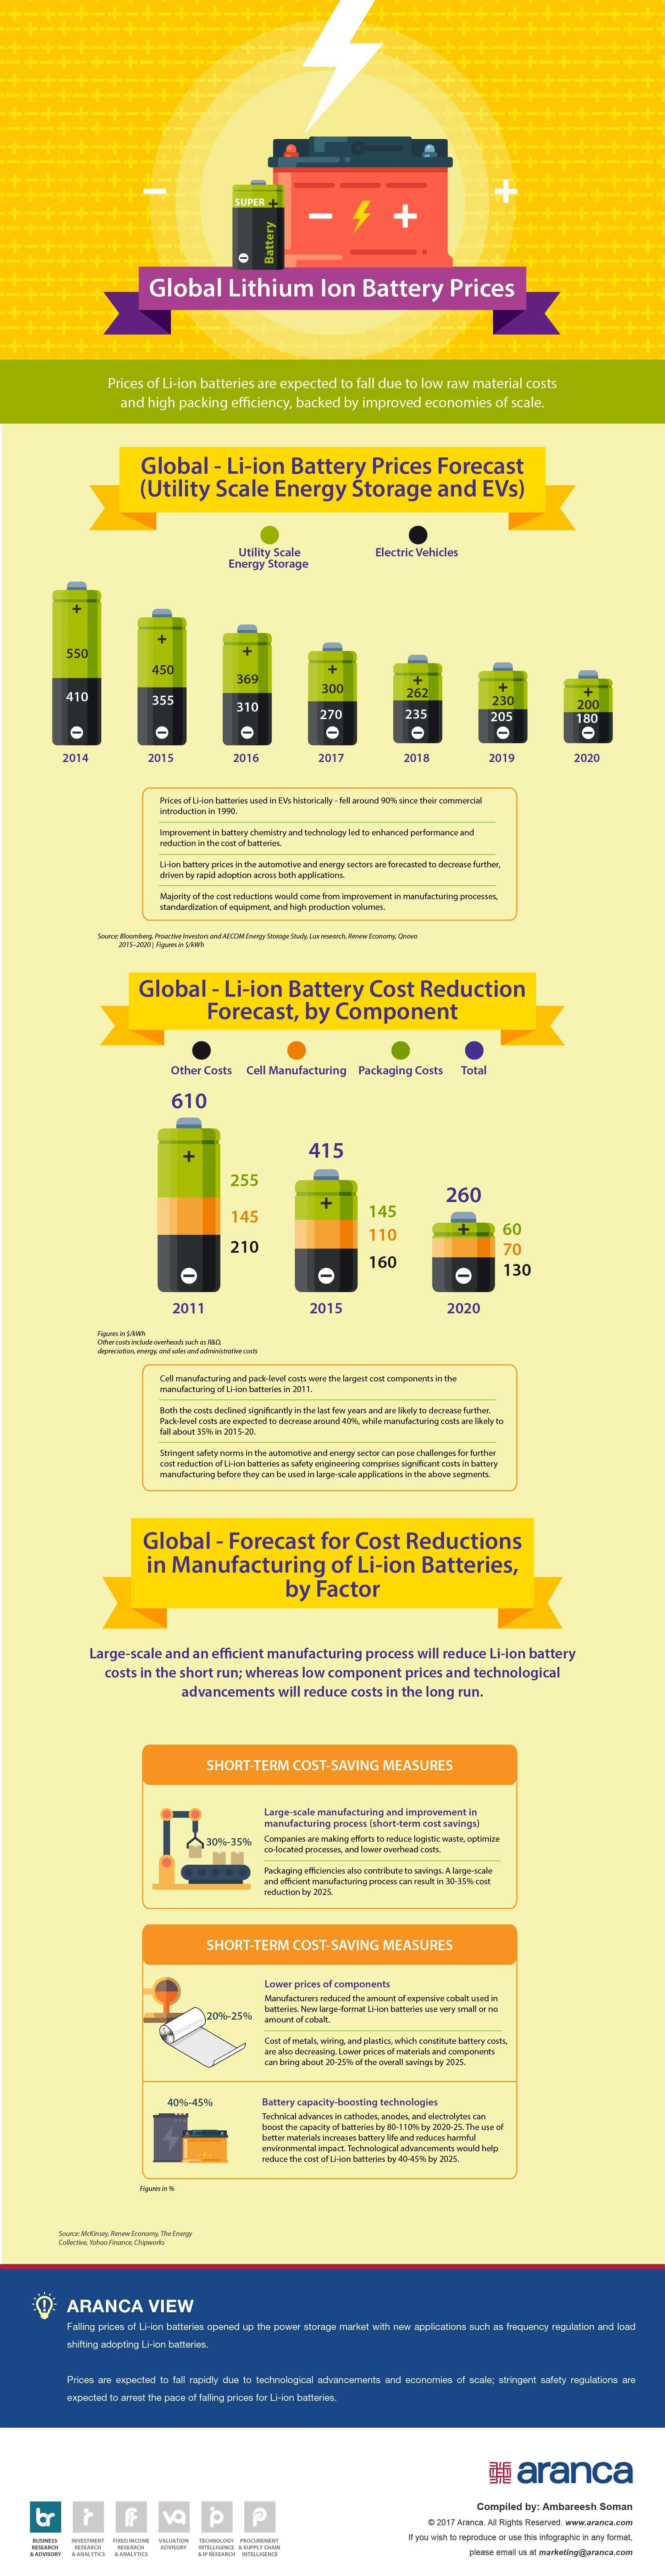 lobal Lithium Ion Battery Sector Analysis